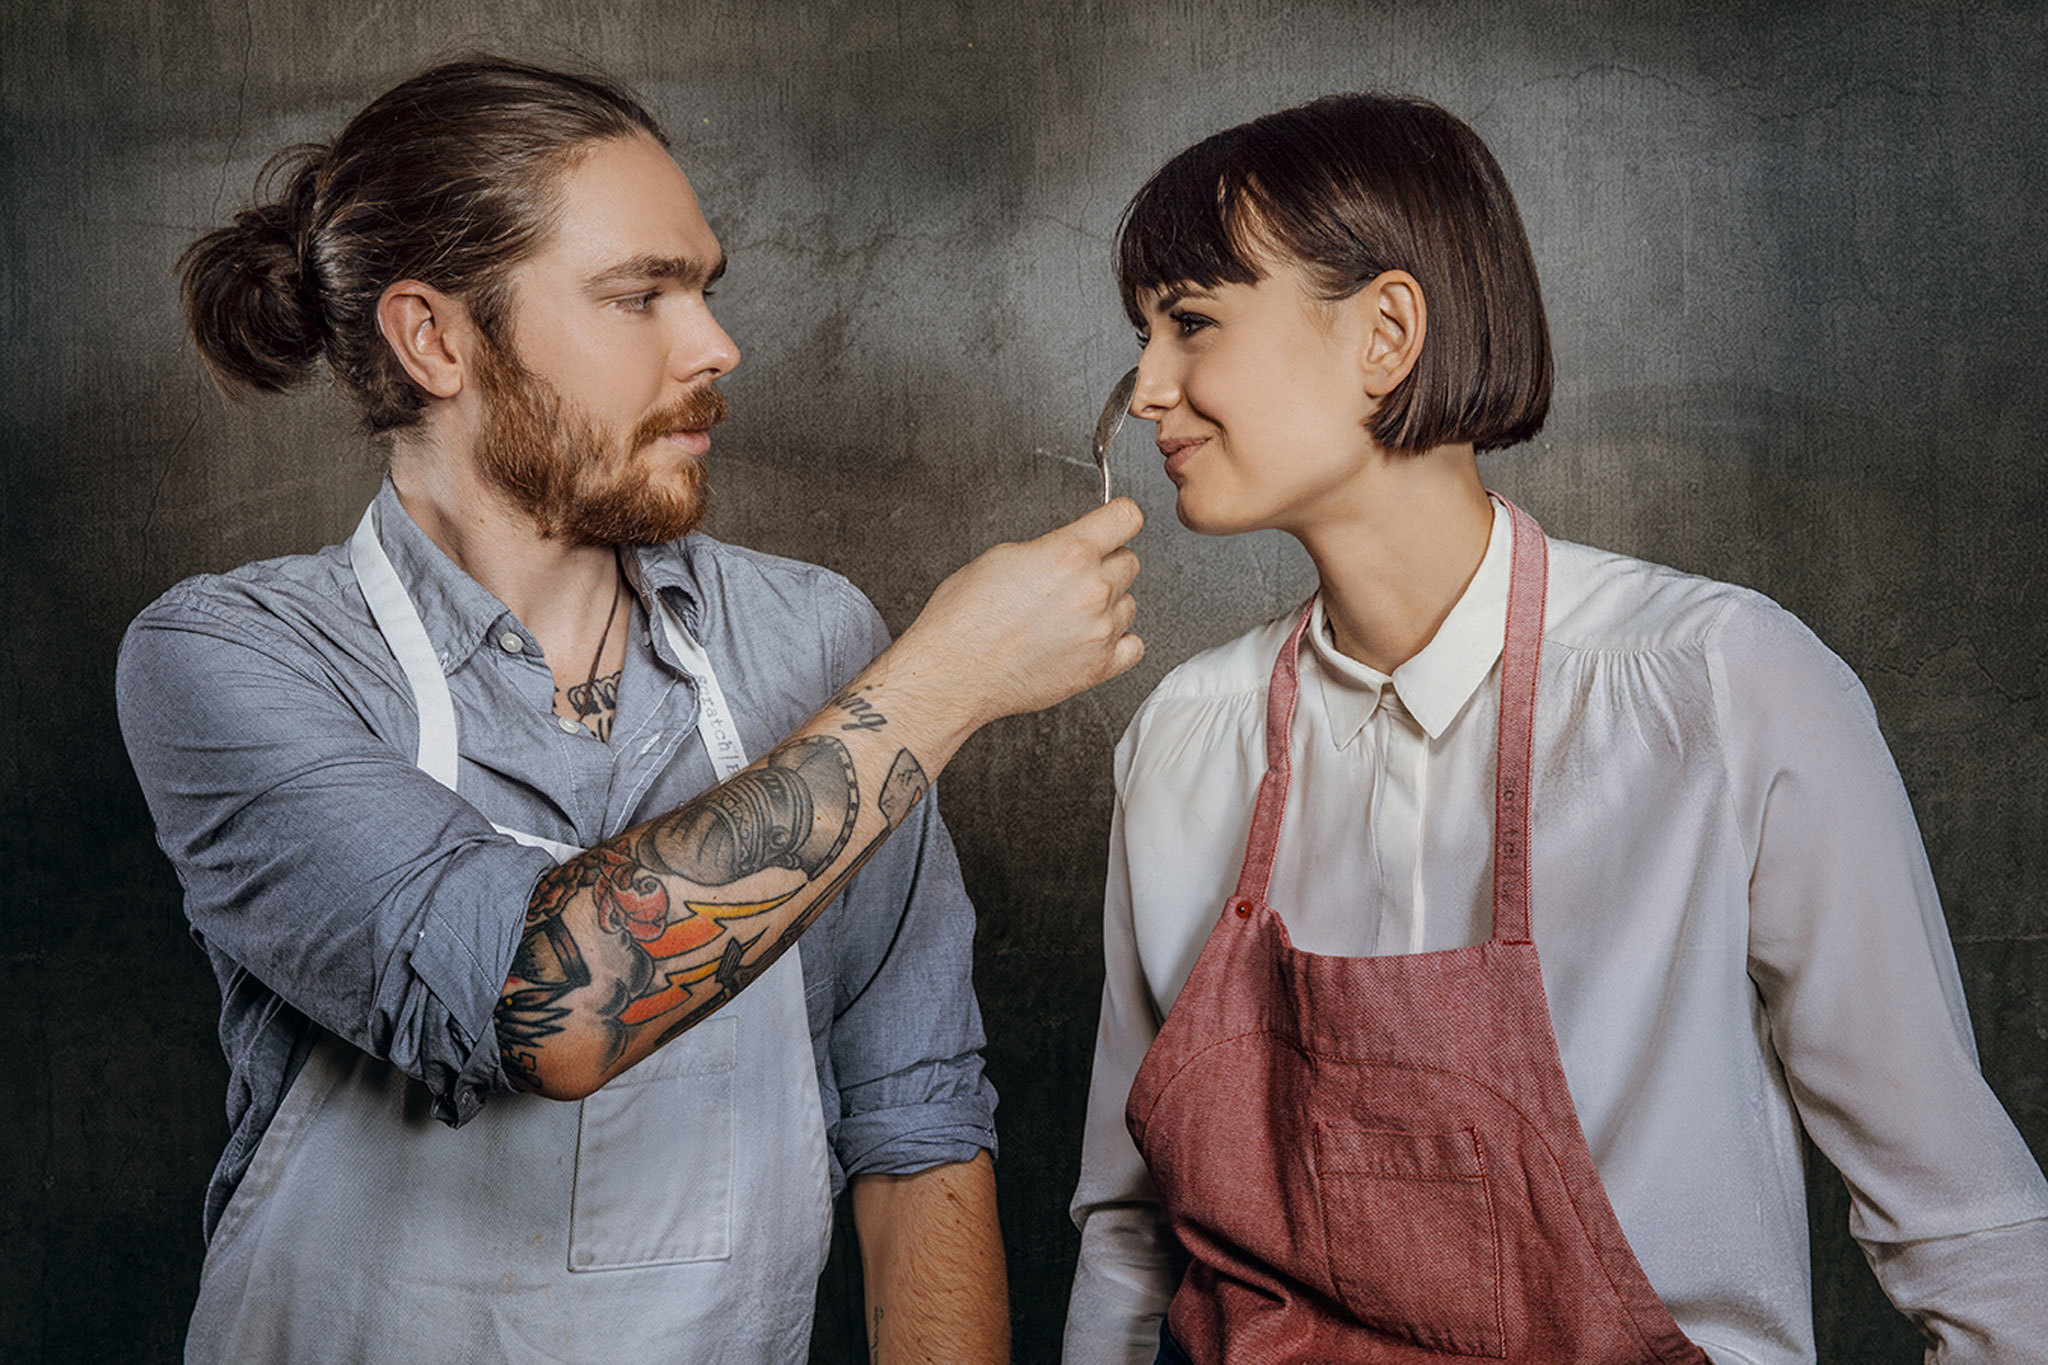 Restaurant power couples